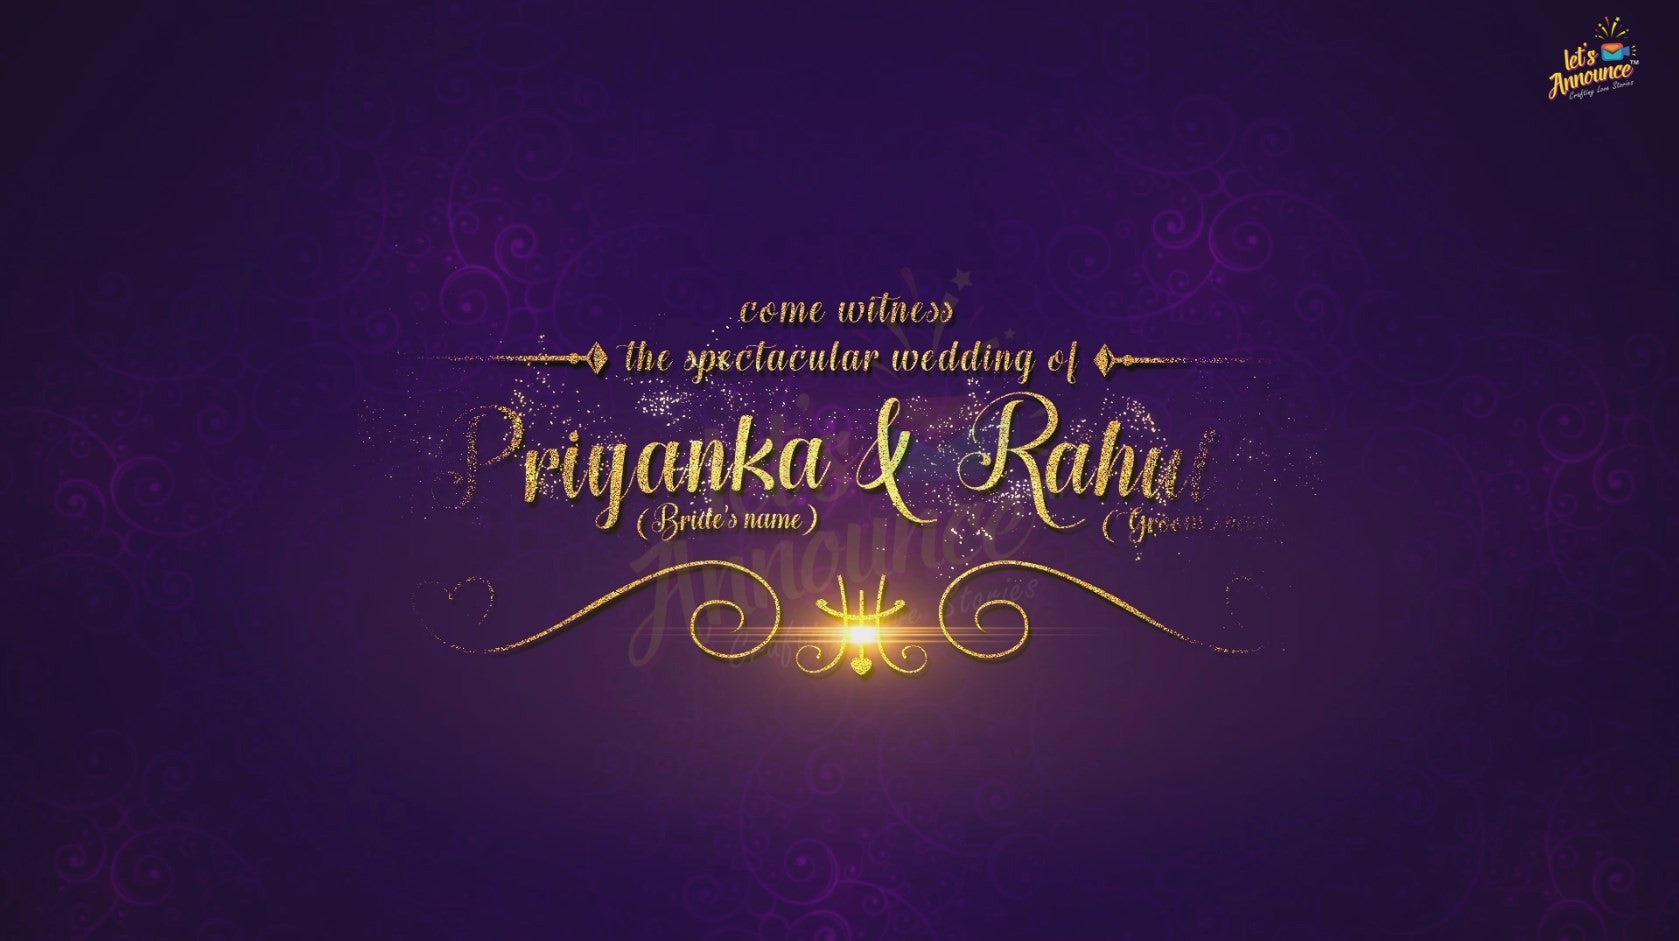 Royal Wedding Invite-68 sec(USD 75$)